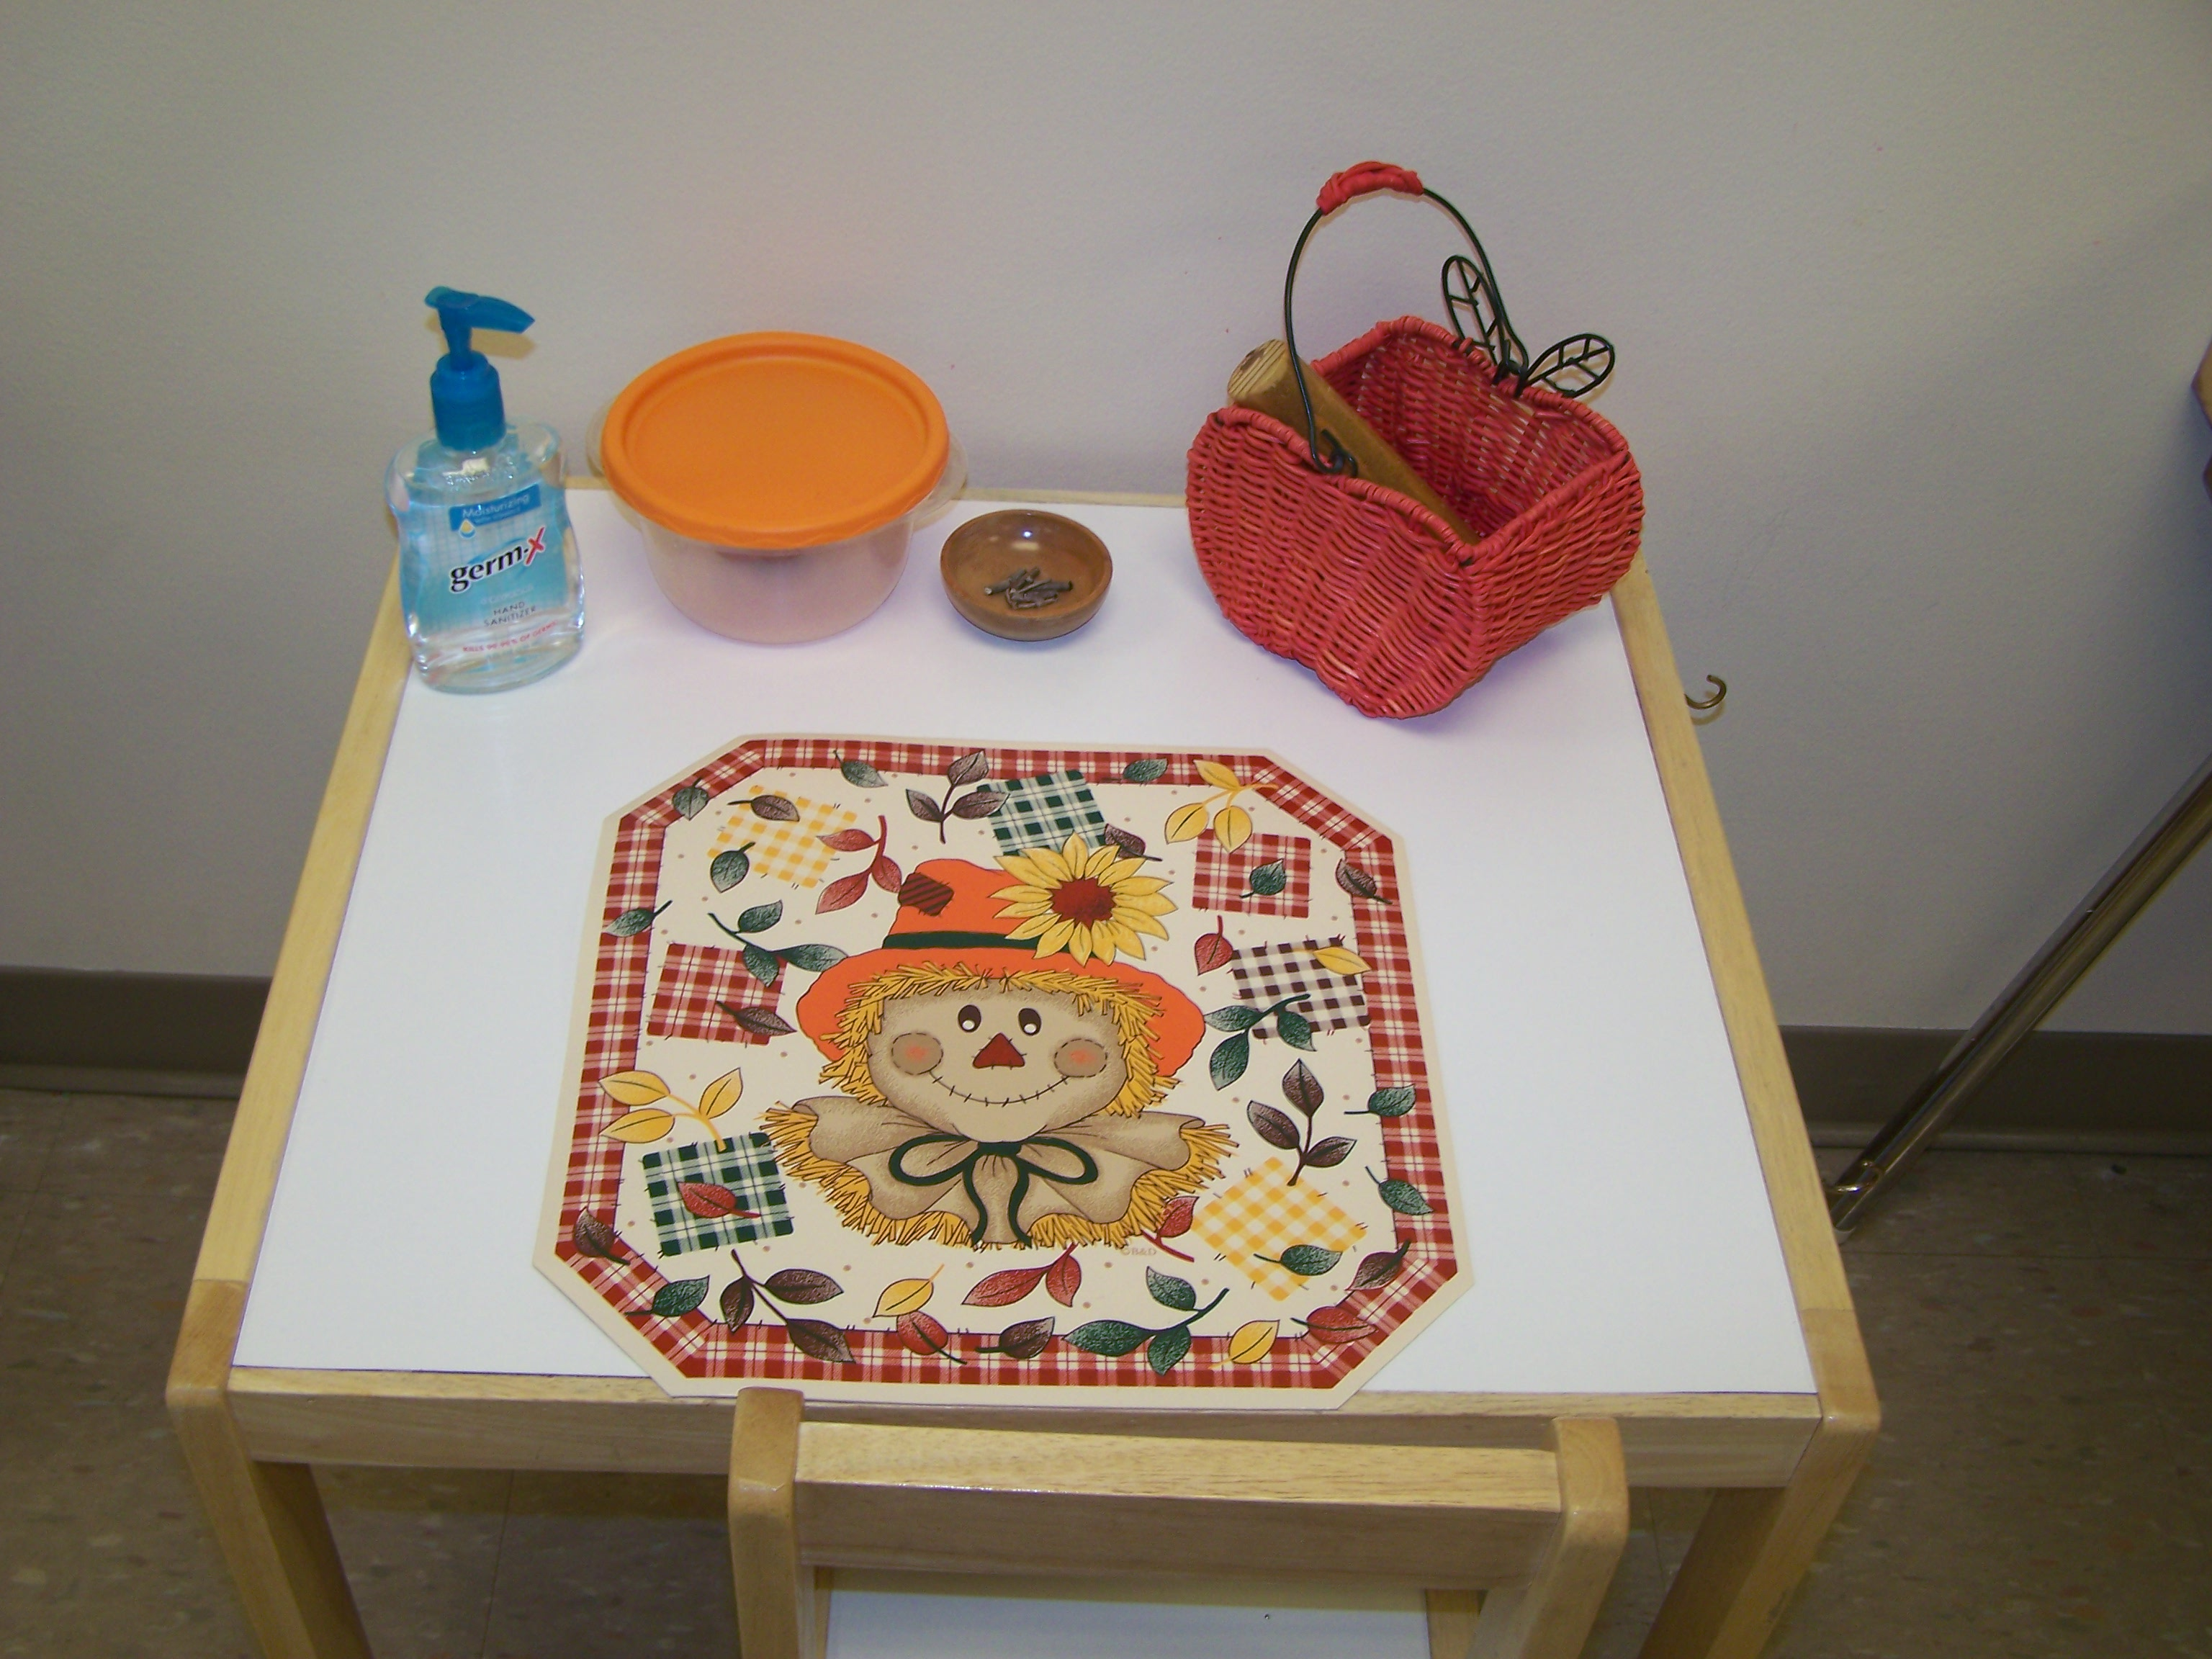 Playdough Table with Apple Playdough (Photo from My Montessori Journey)